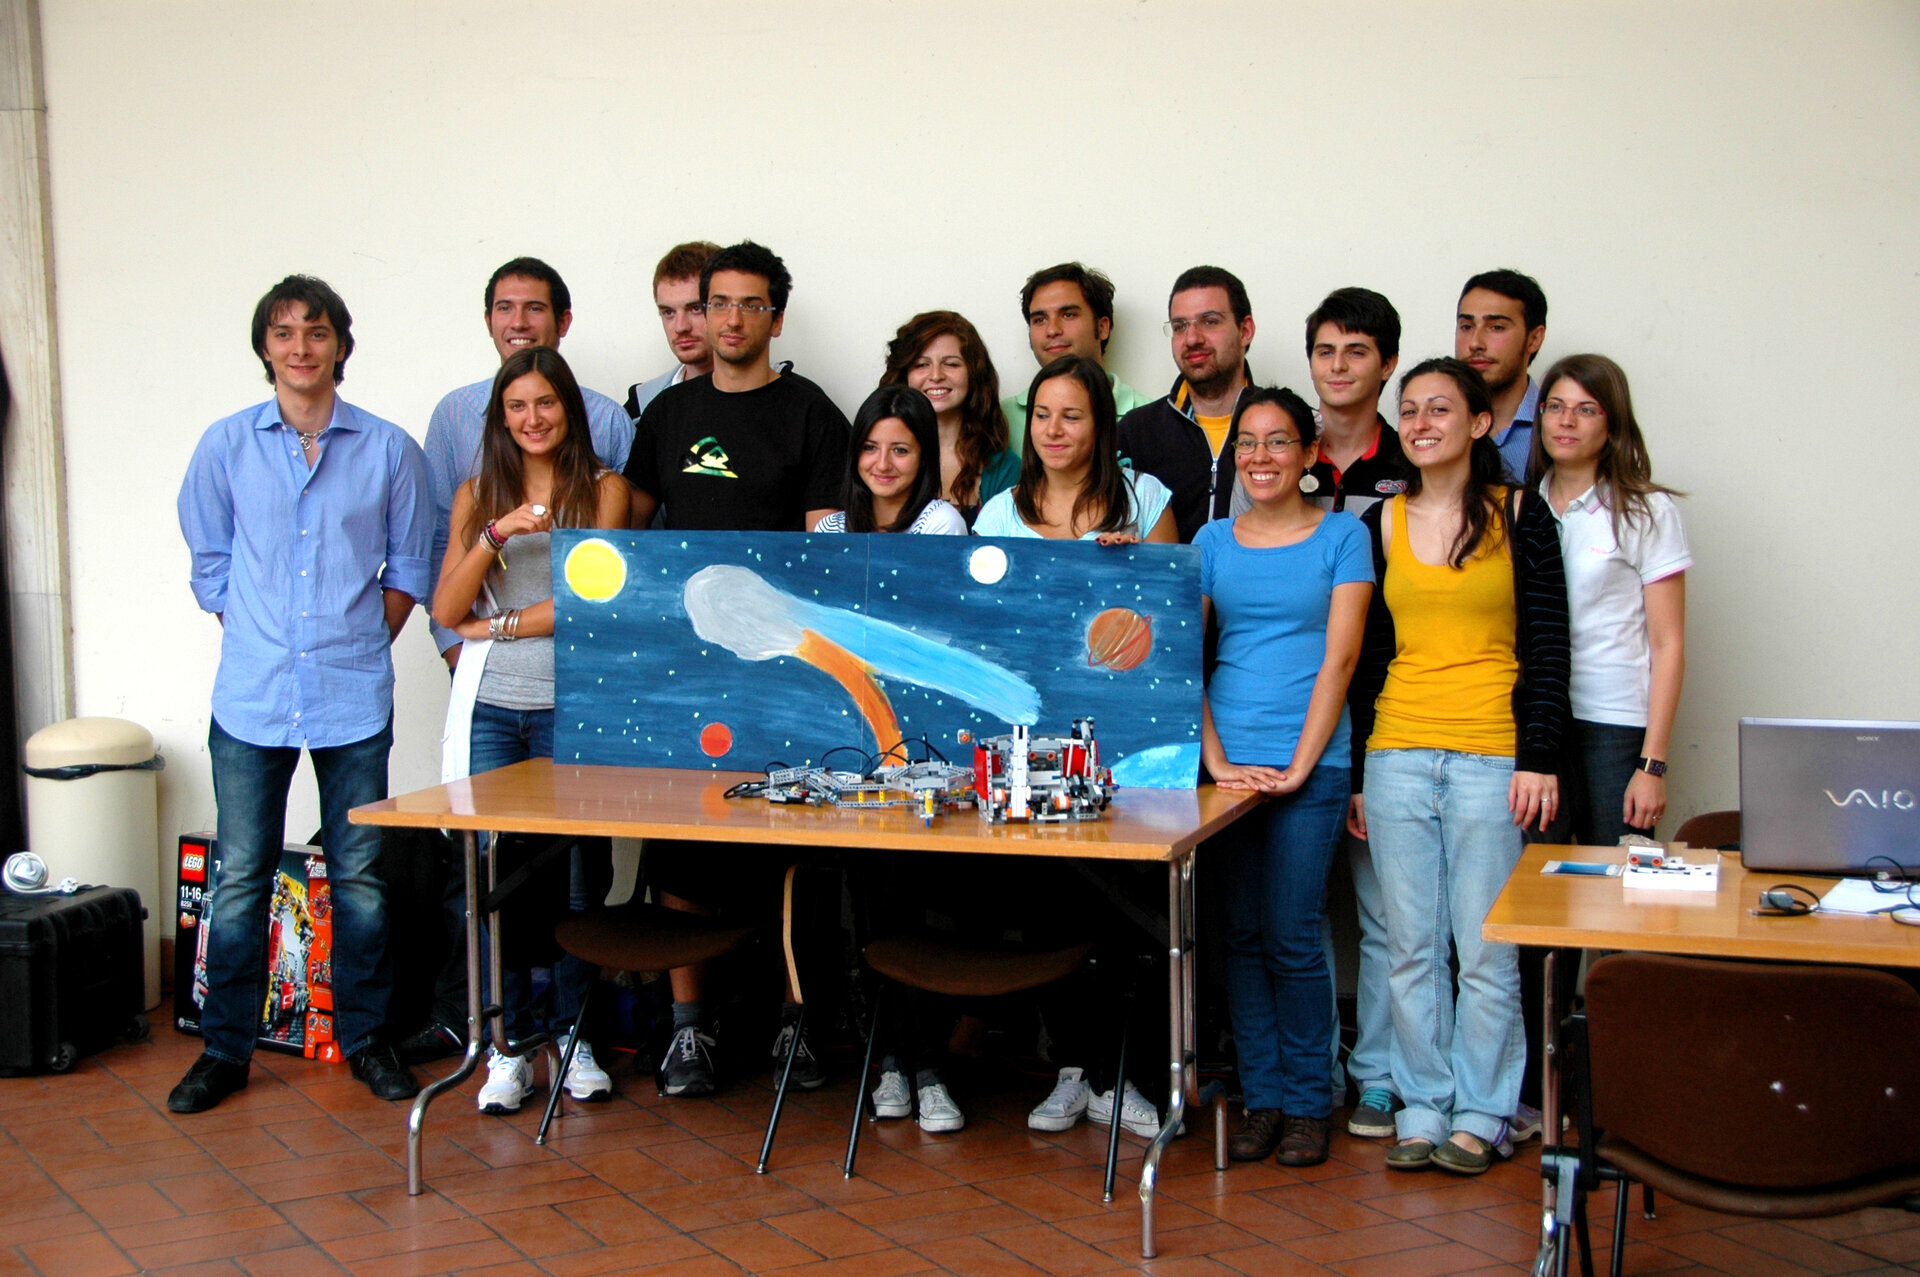 The students who tested the Rosetta model